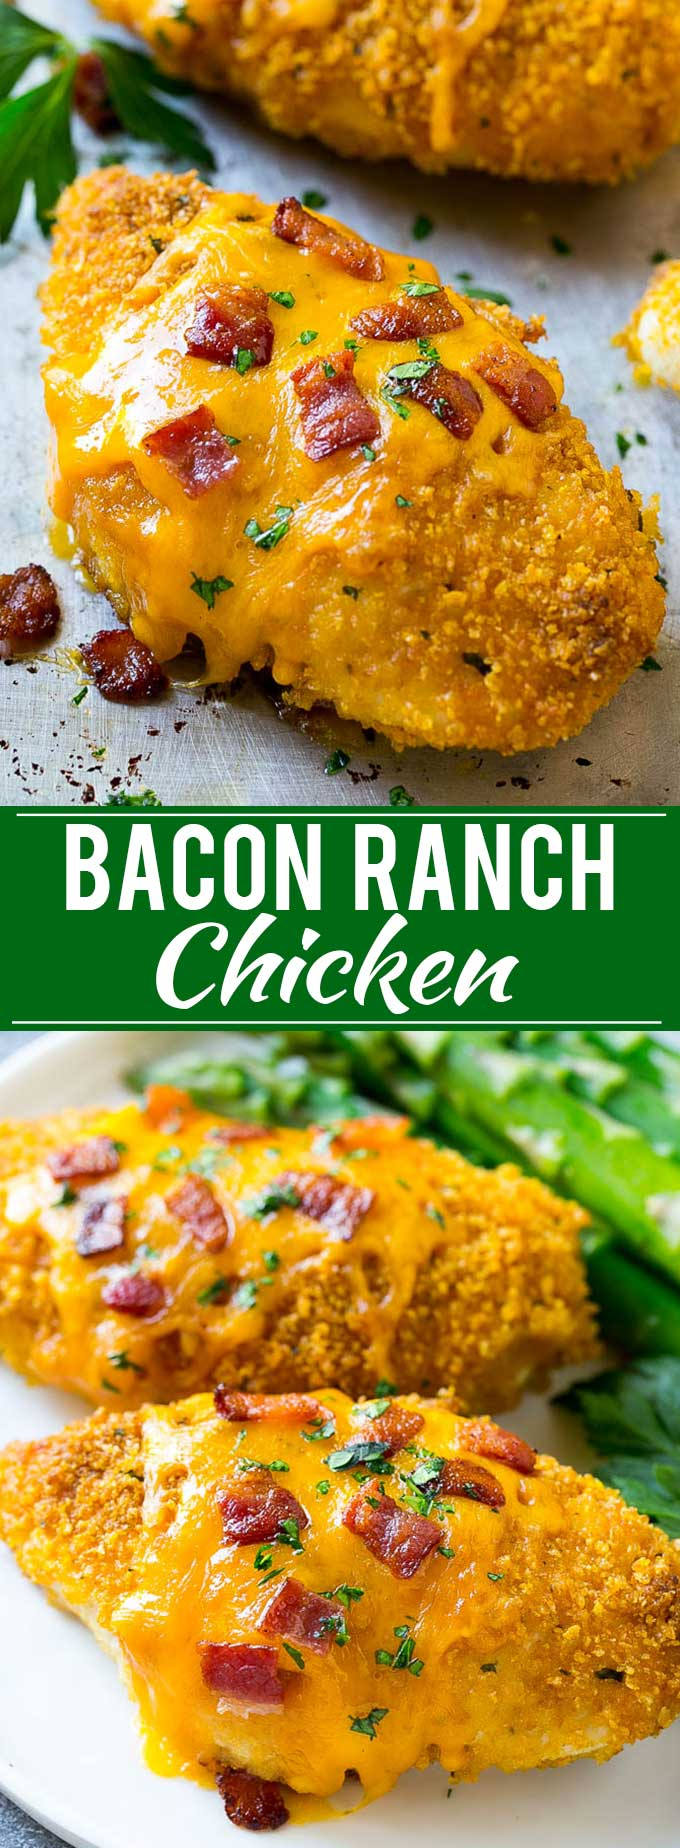 Bacon Ranch Chicken Recipe | Baked Ranch Chicken | Hidden Valley Ranch Chicken | Dry Ranch Dressing Chicken Recipe